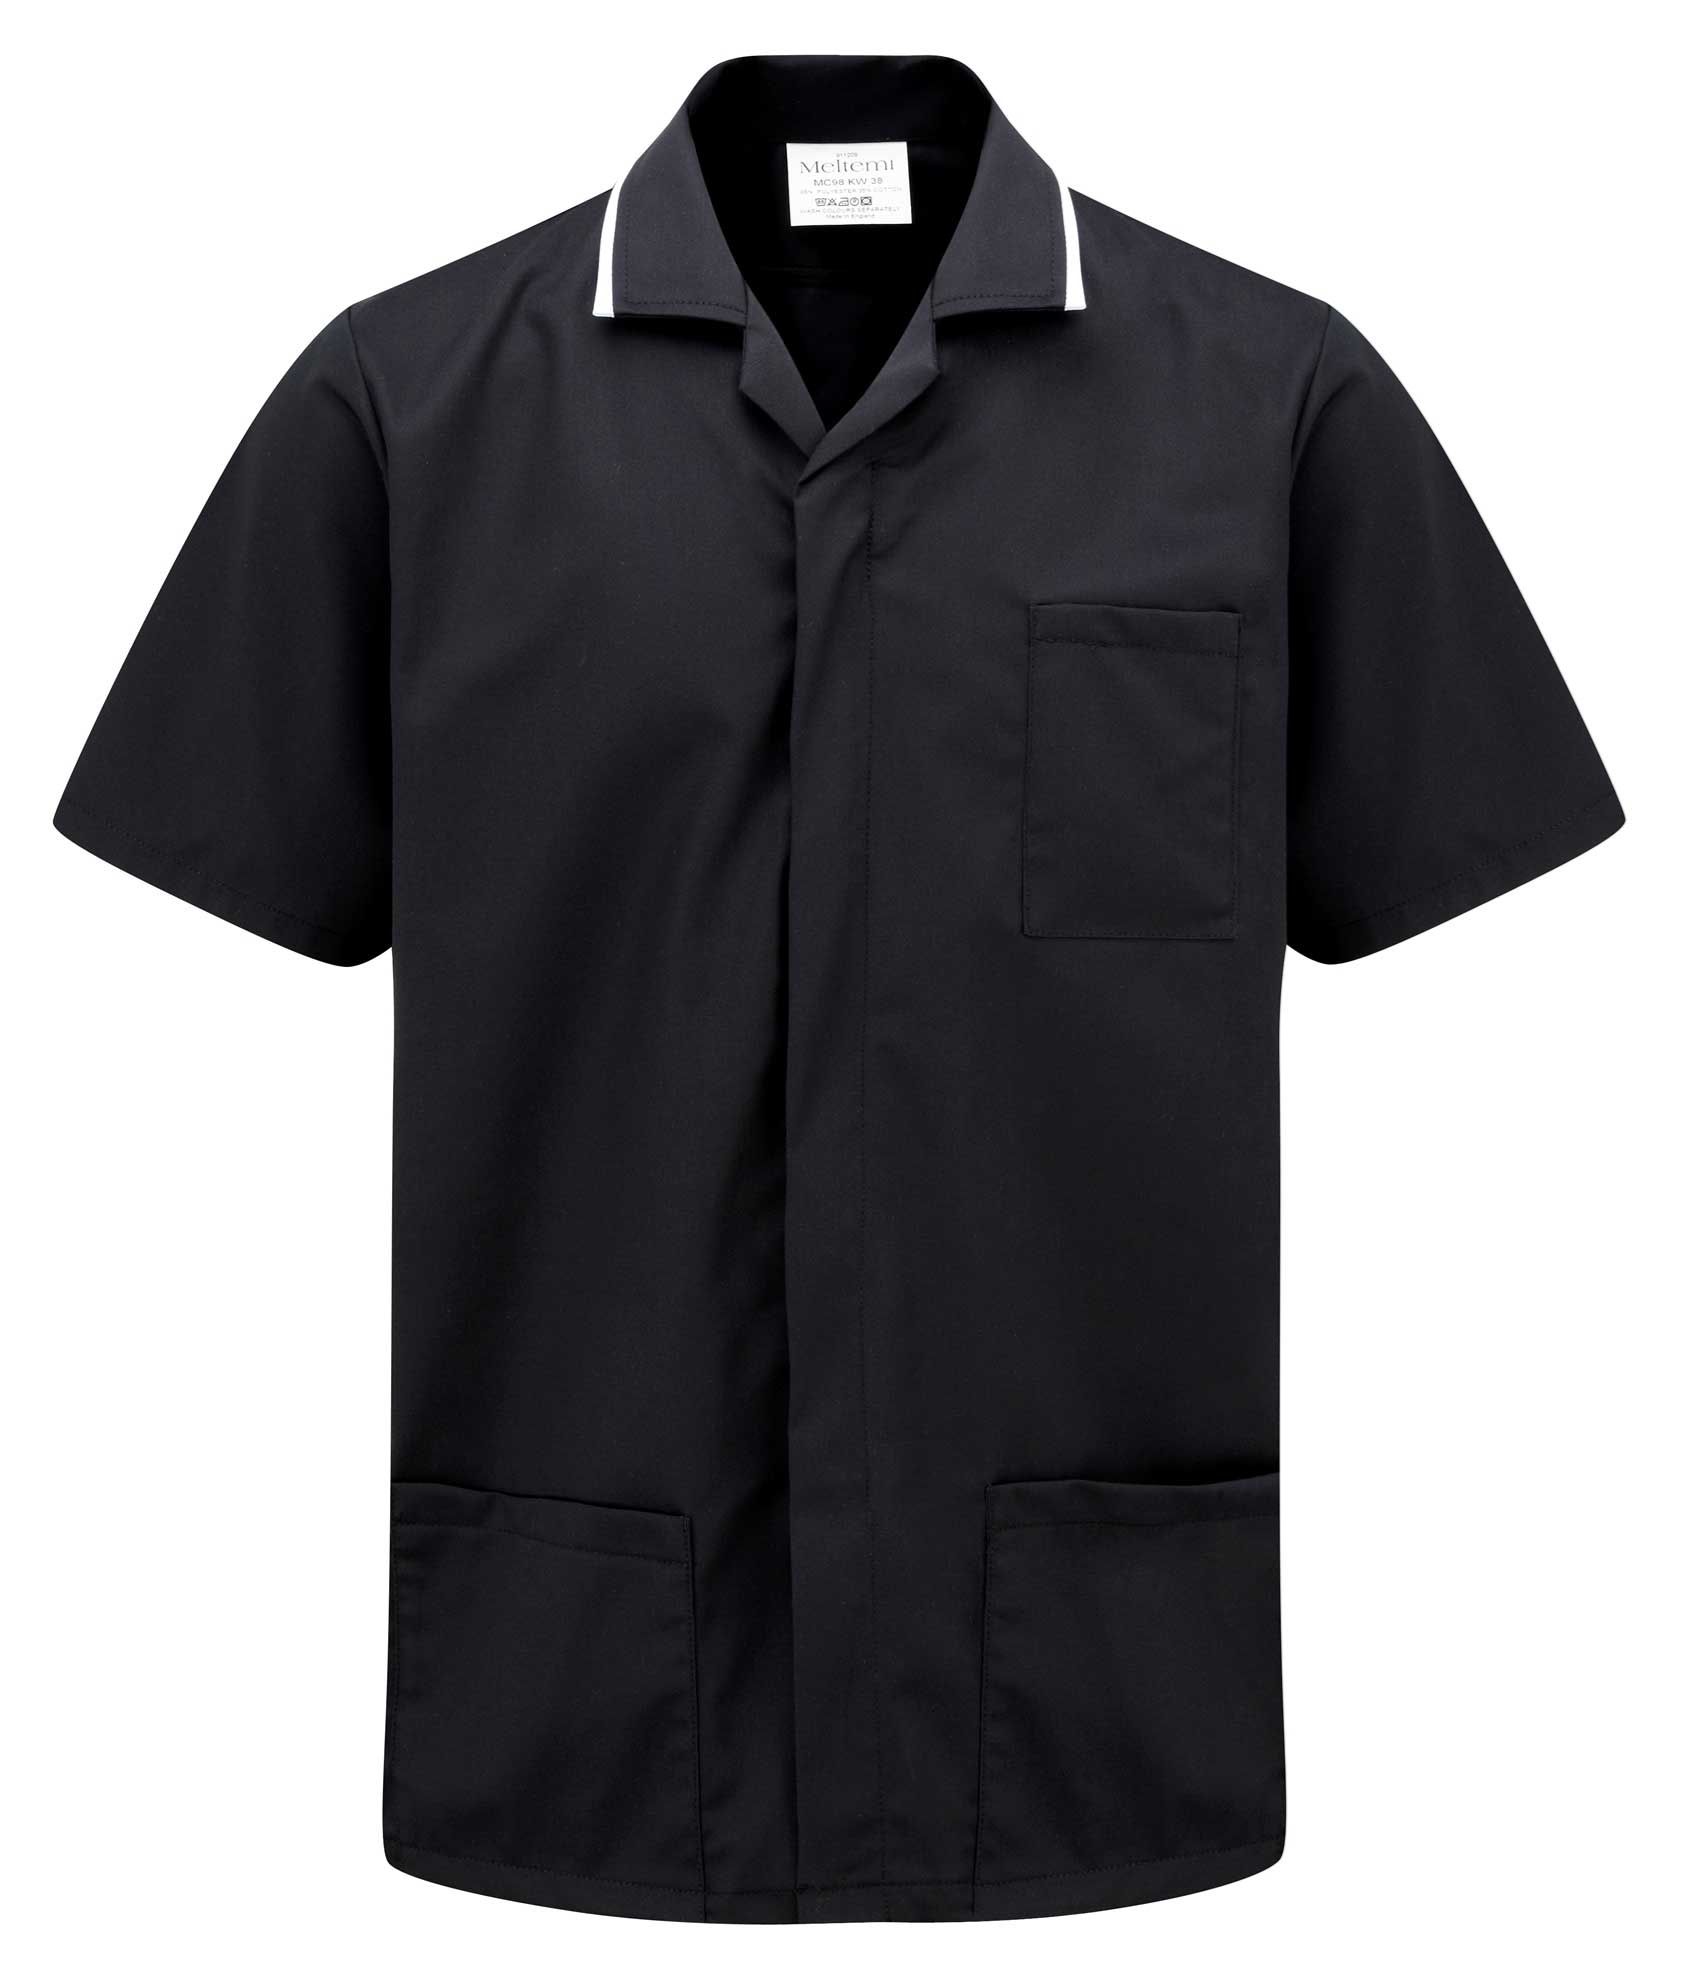 Picture of Advantage Front Fastening Tunic - Black/White